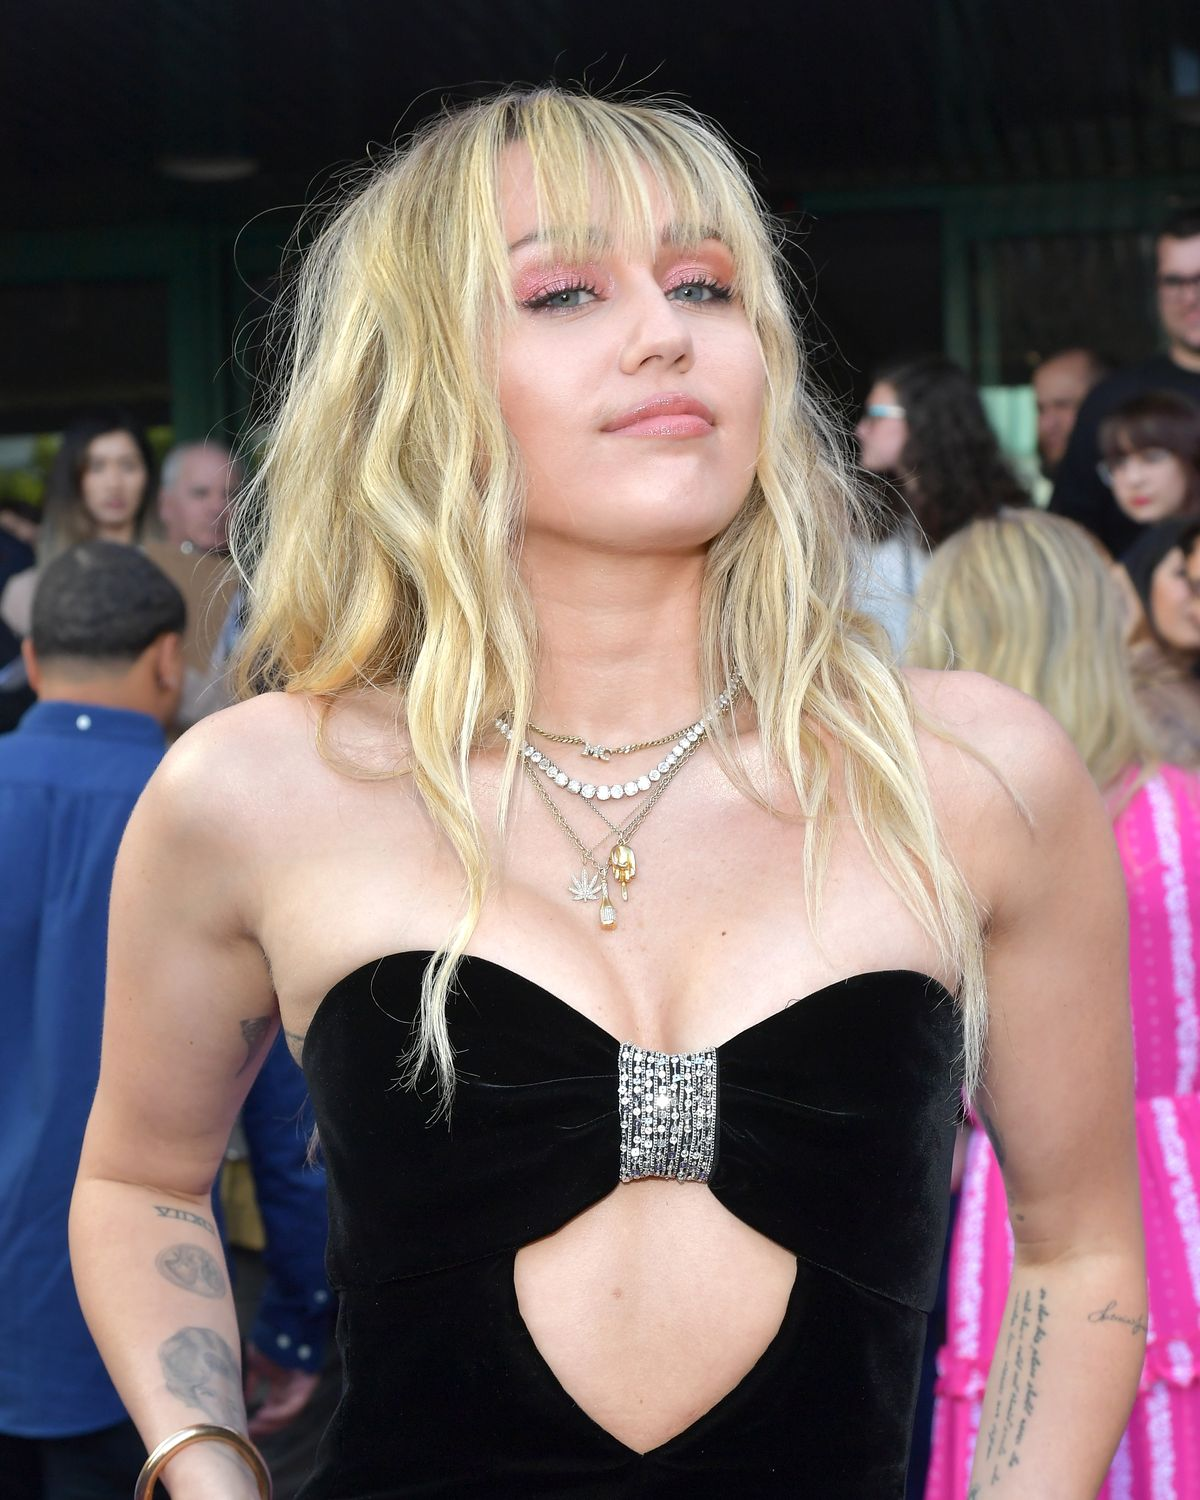 Miley Cyrus Shared Mom & Dad Intresting Reactions To Leaked Private Photos - cover